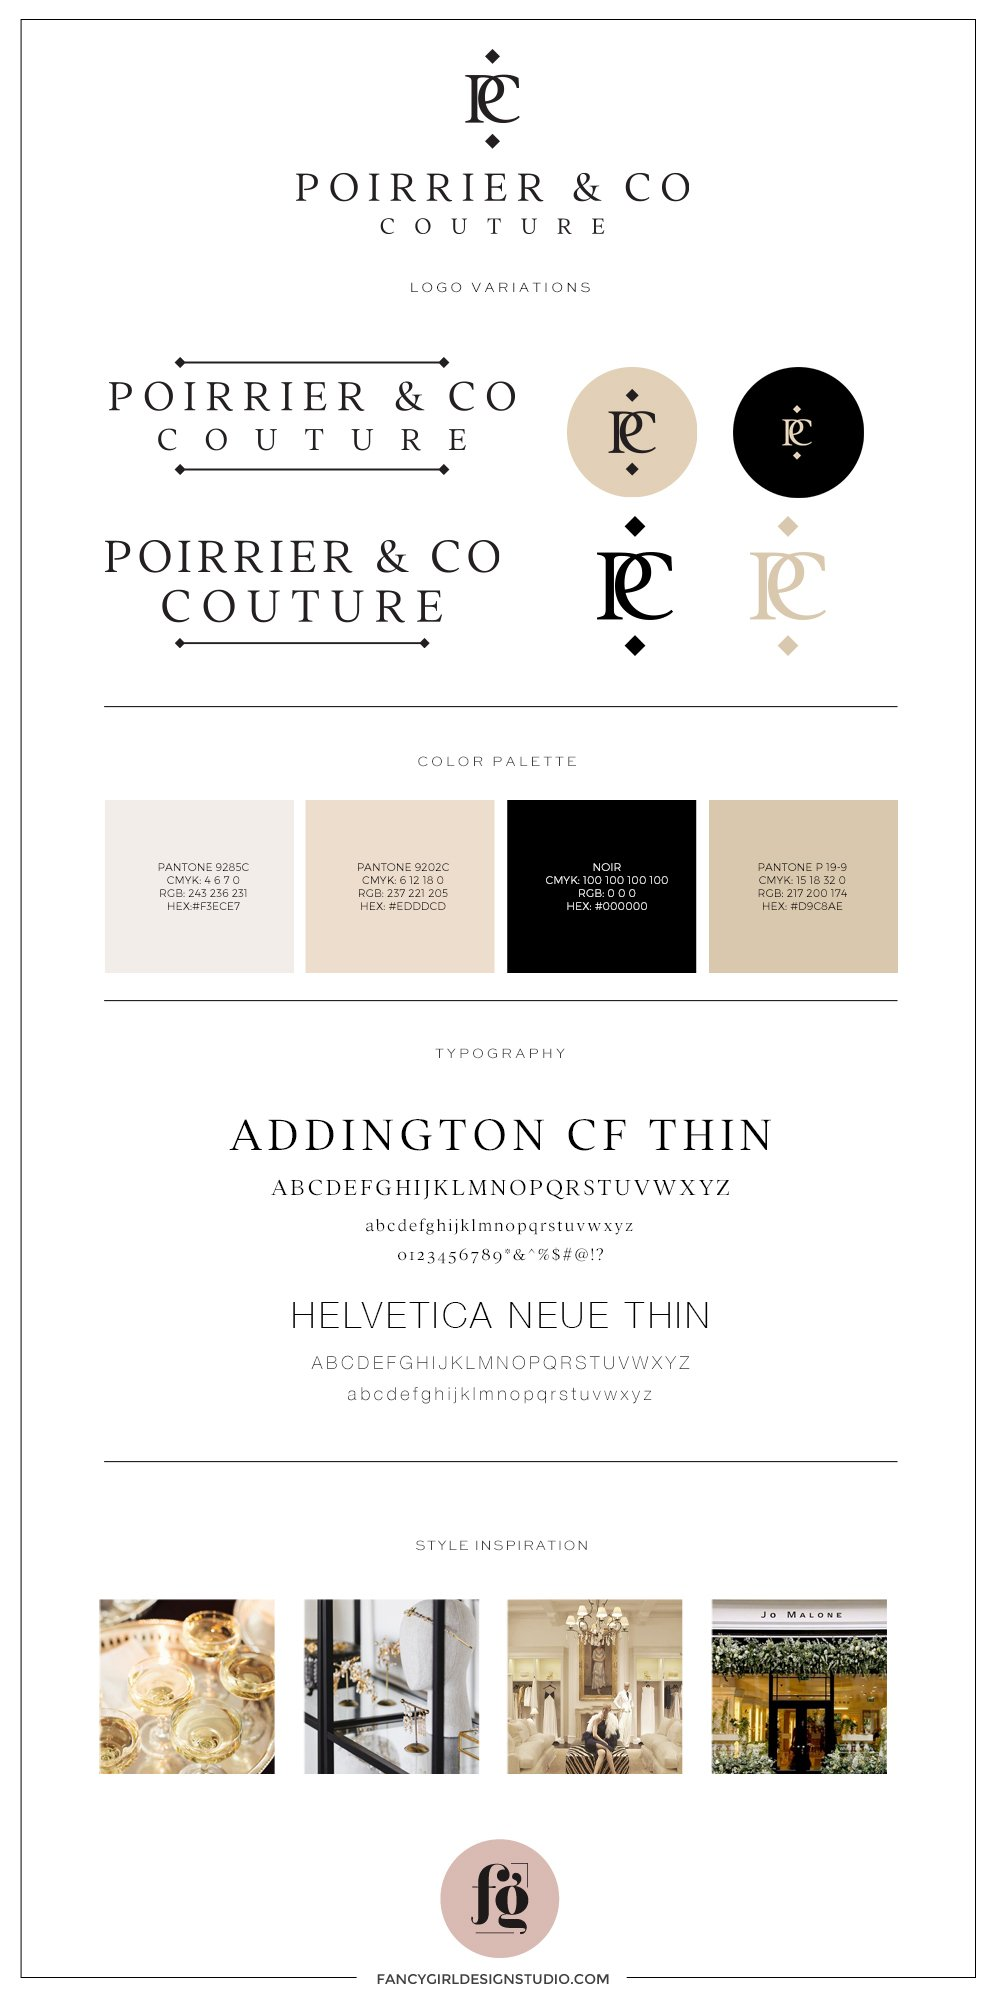 Brand Style Guide for Poirrier & Co Couture - Design by Fancy Girl Design Studio | elegant, timeless, yet bold enough to make a statement